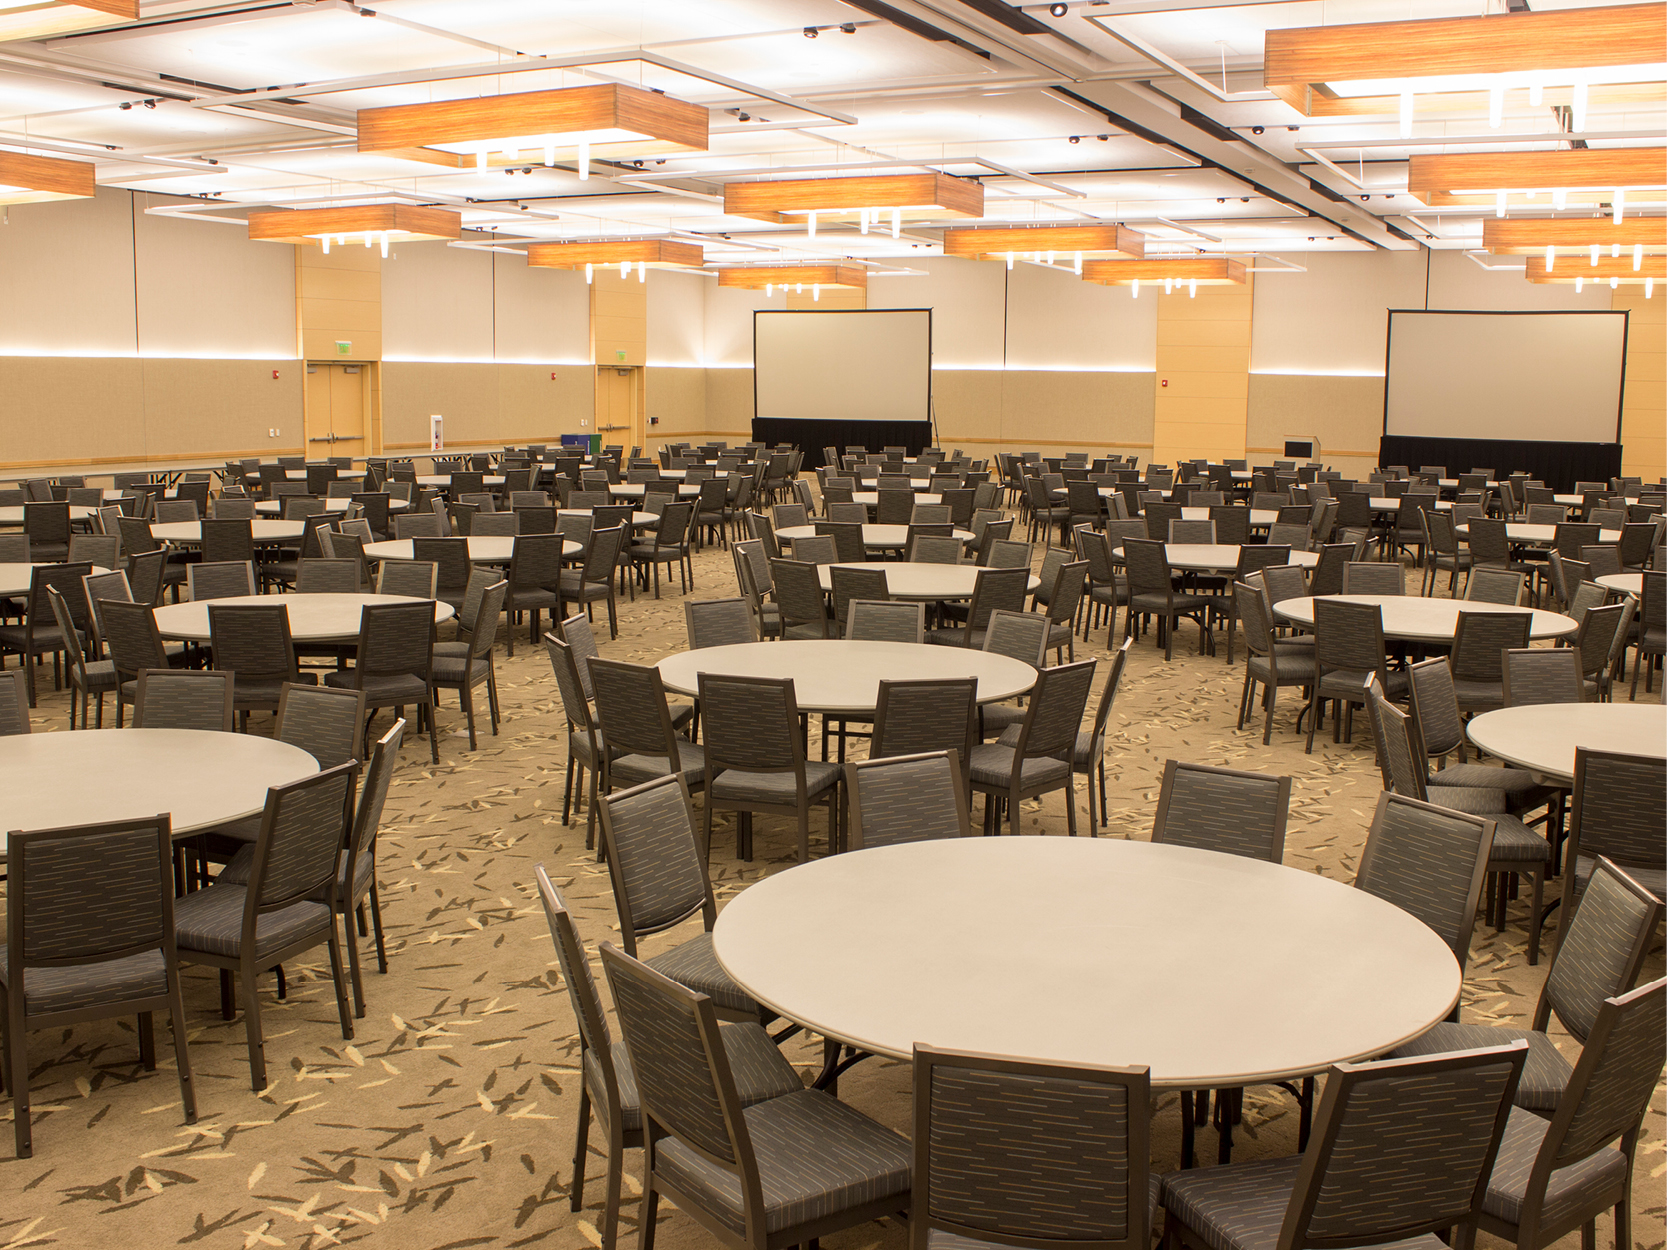 Ballroom with tables and chairs and two large screens